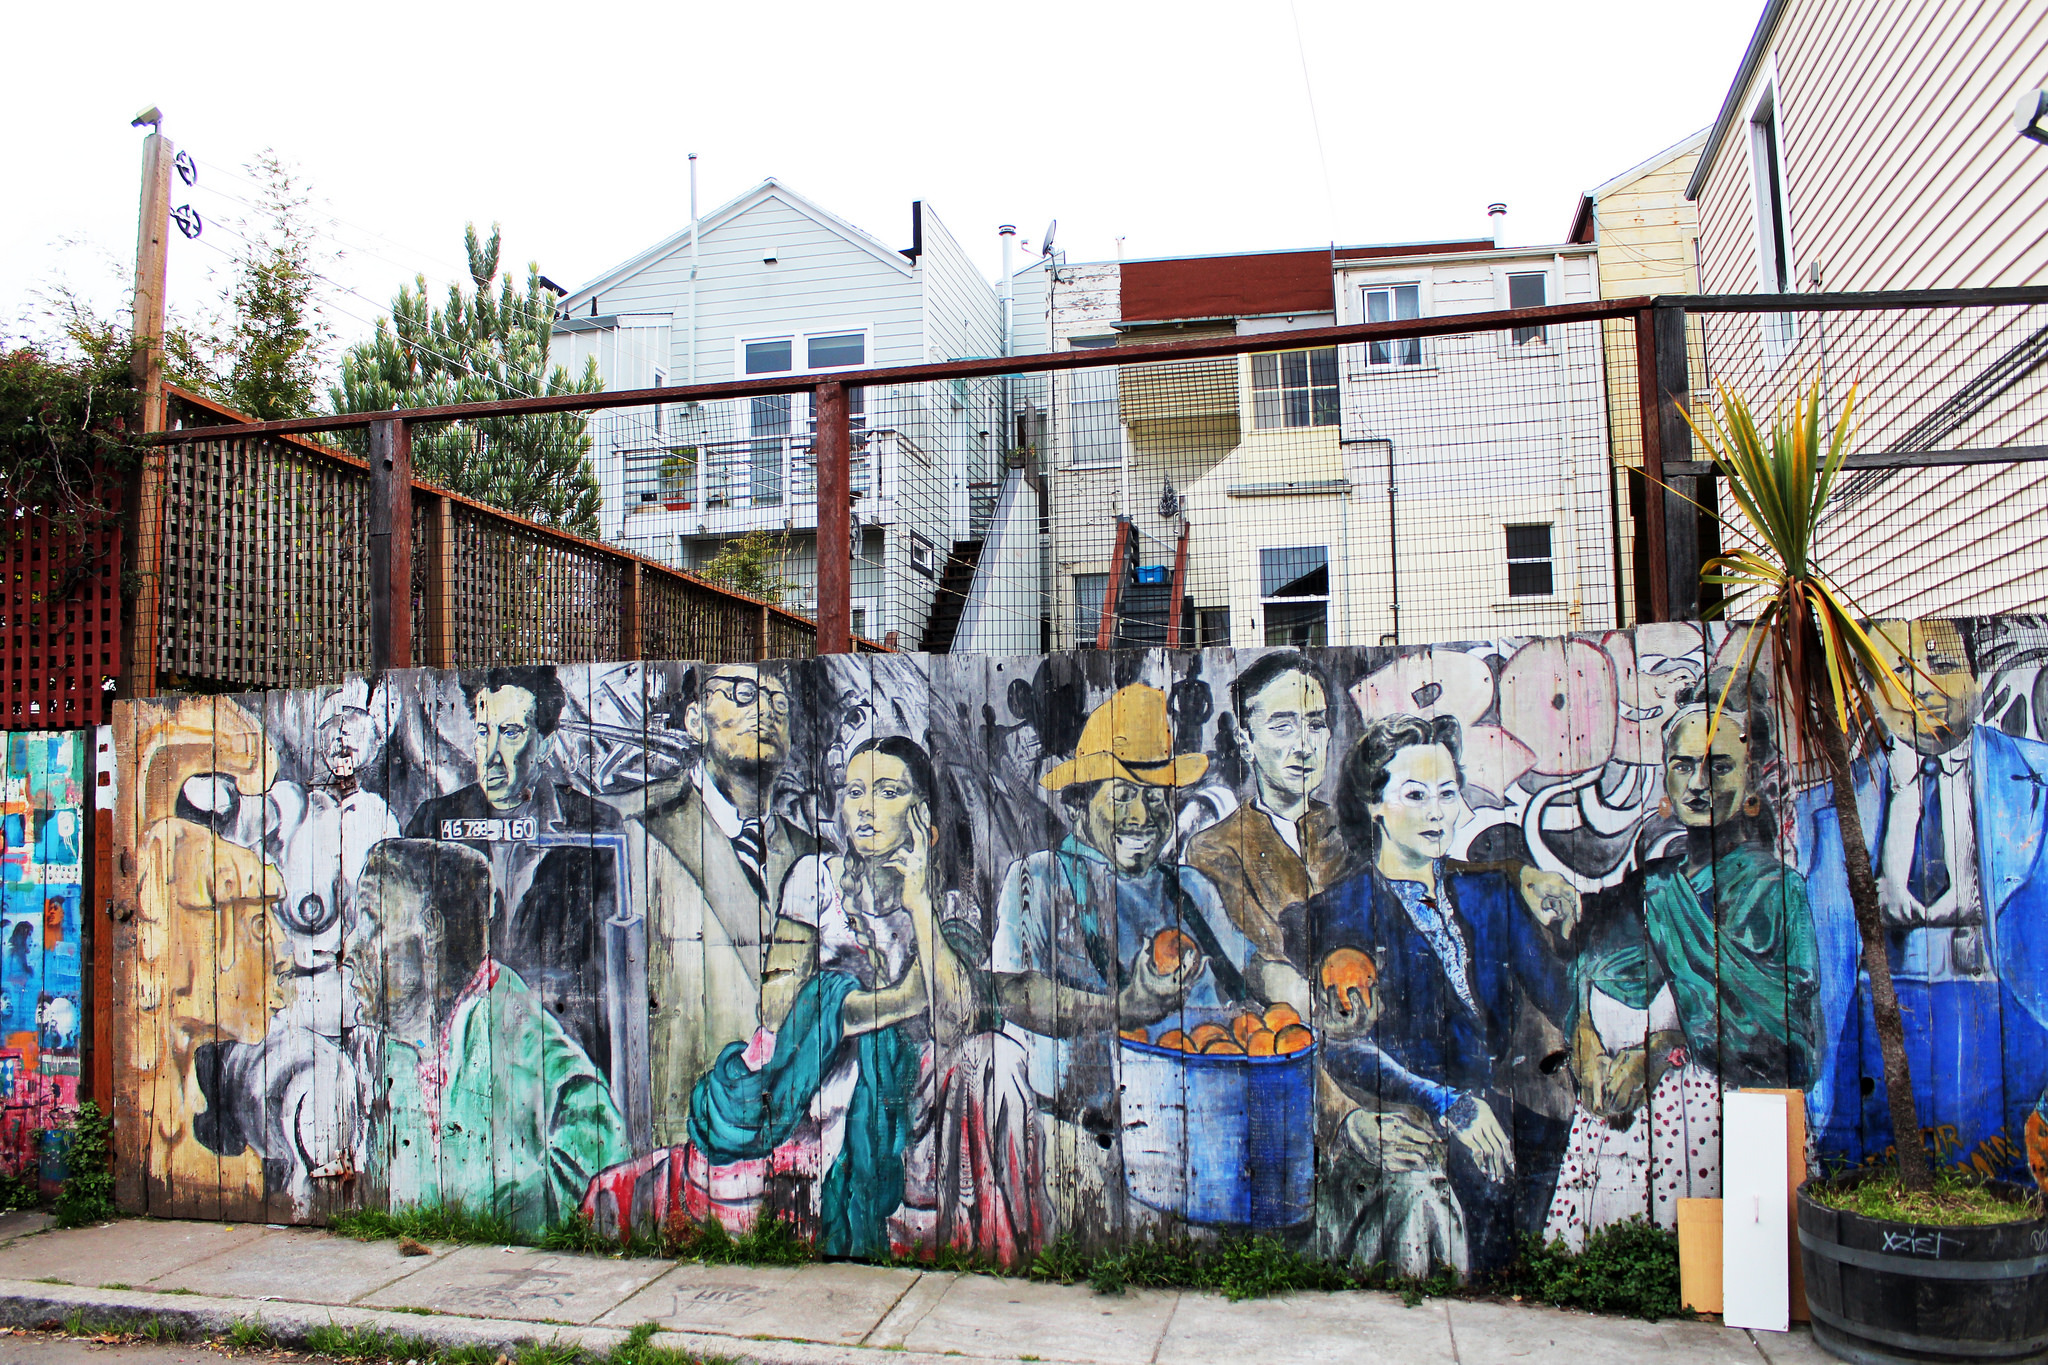 The ultimate guide to the Mission murals